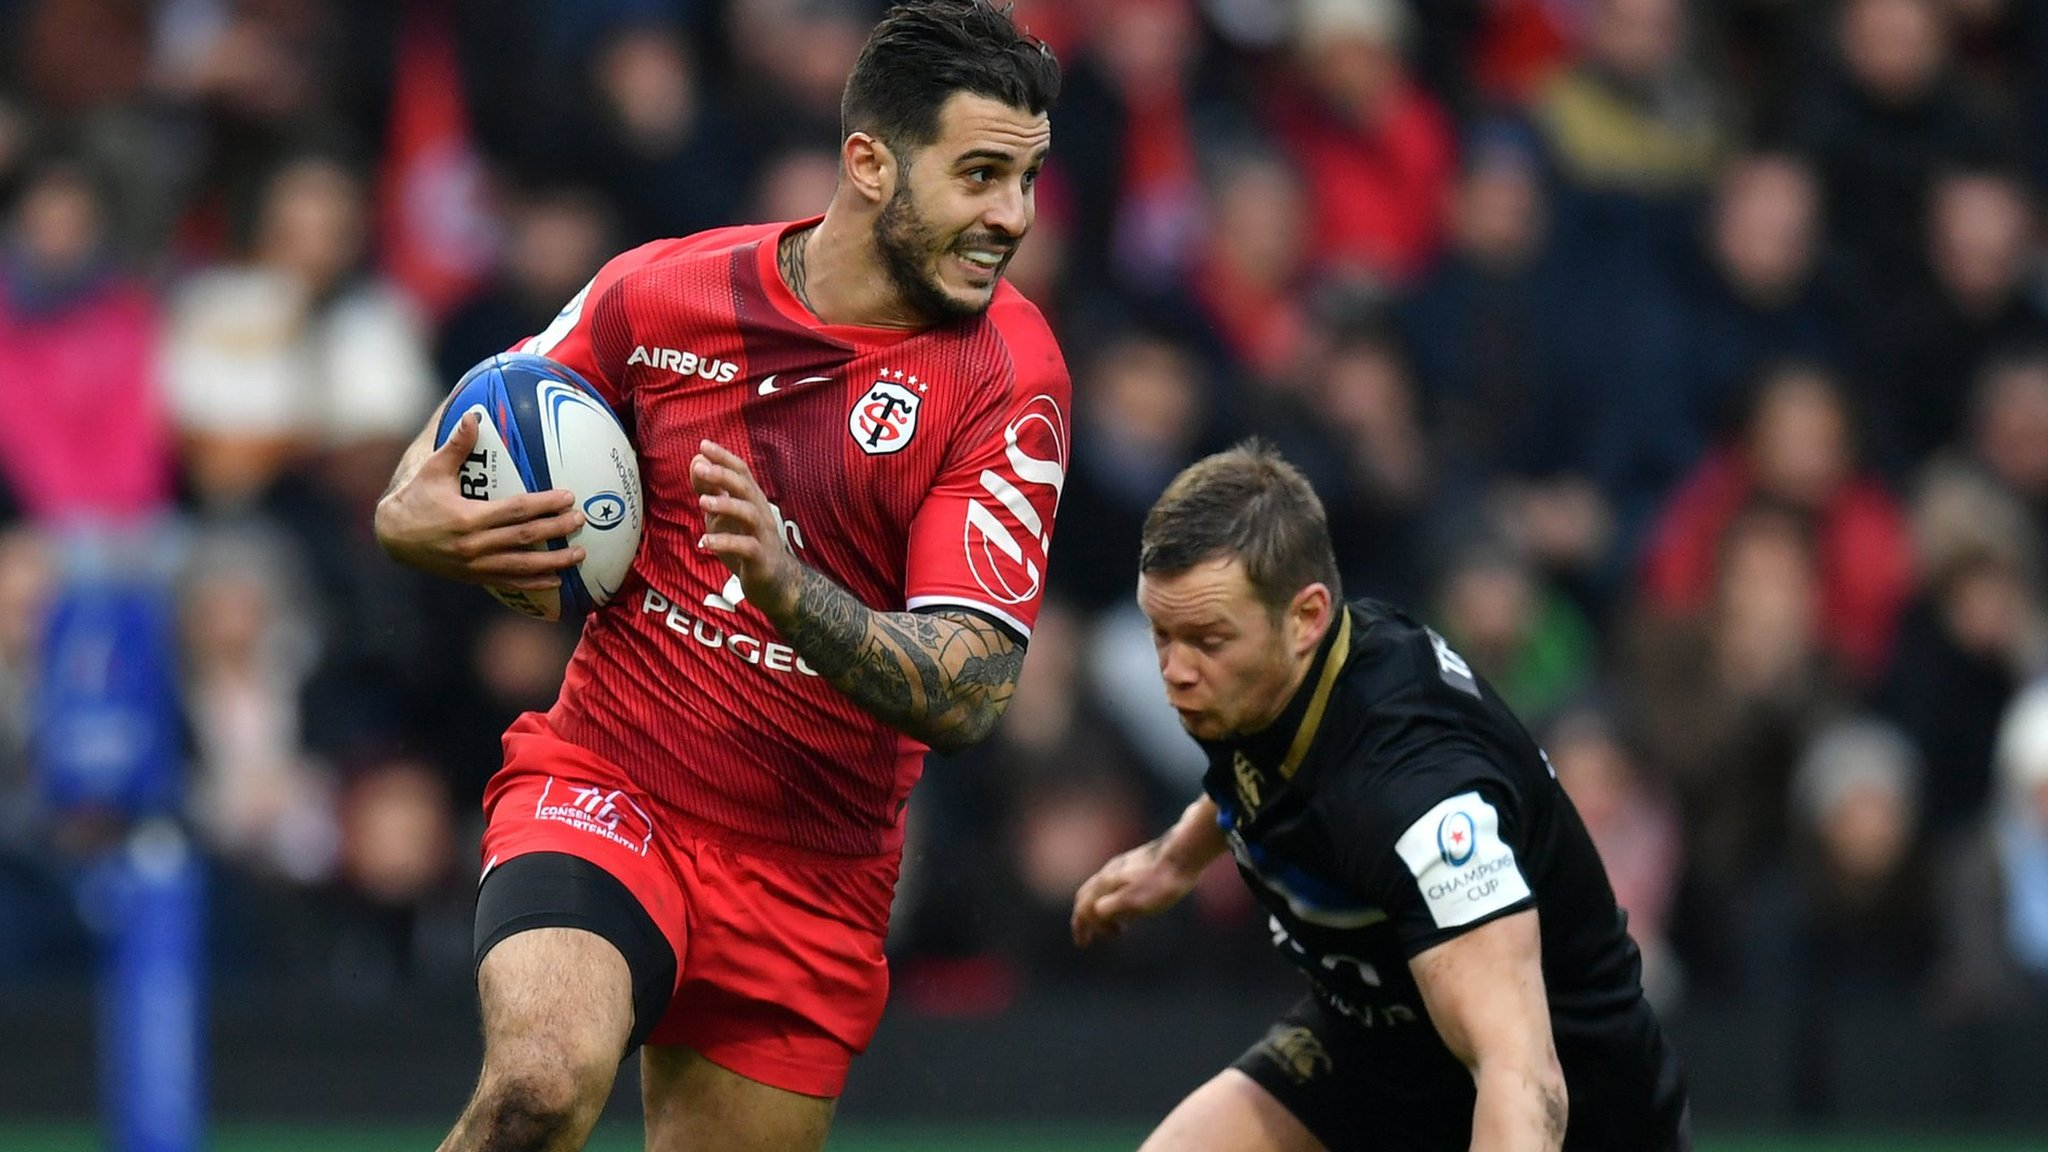 Bath fightback comes up short in Toulouse